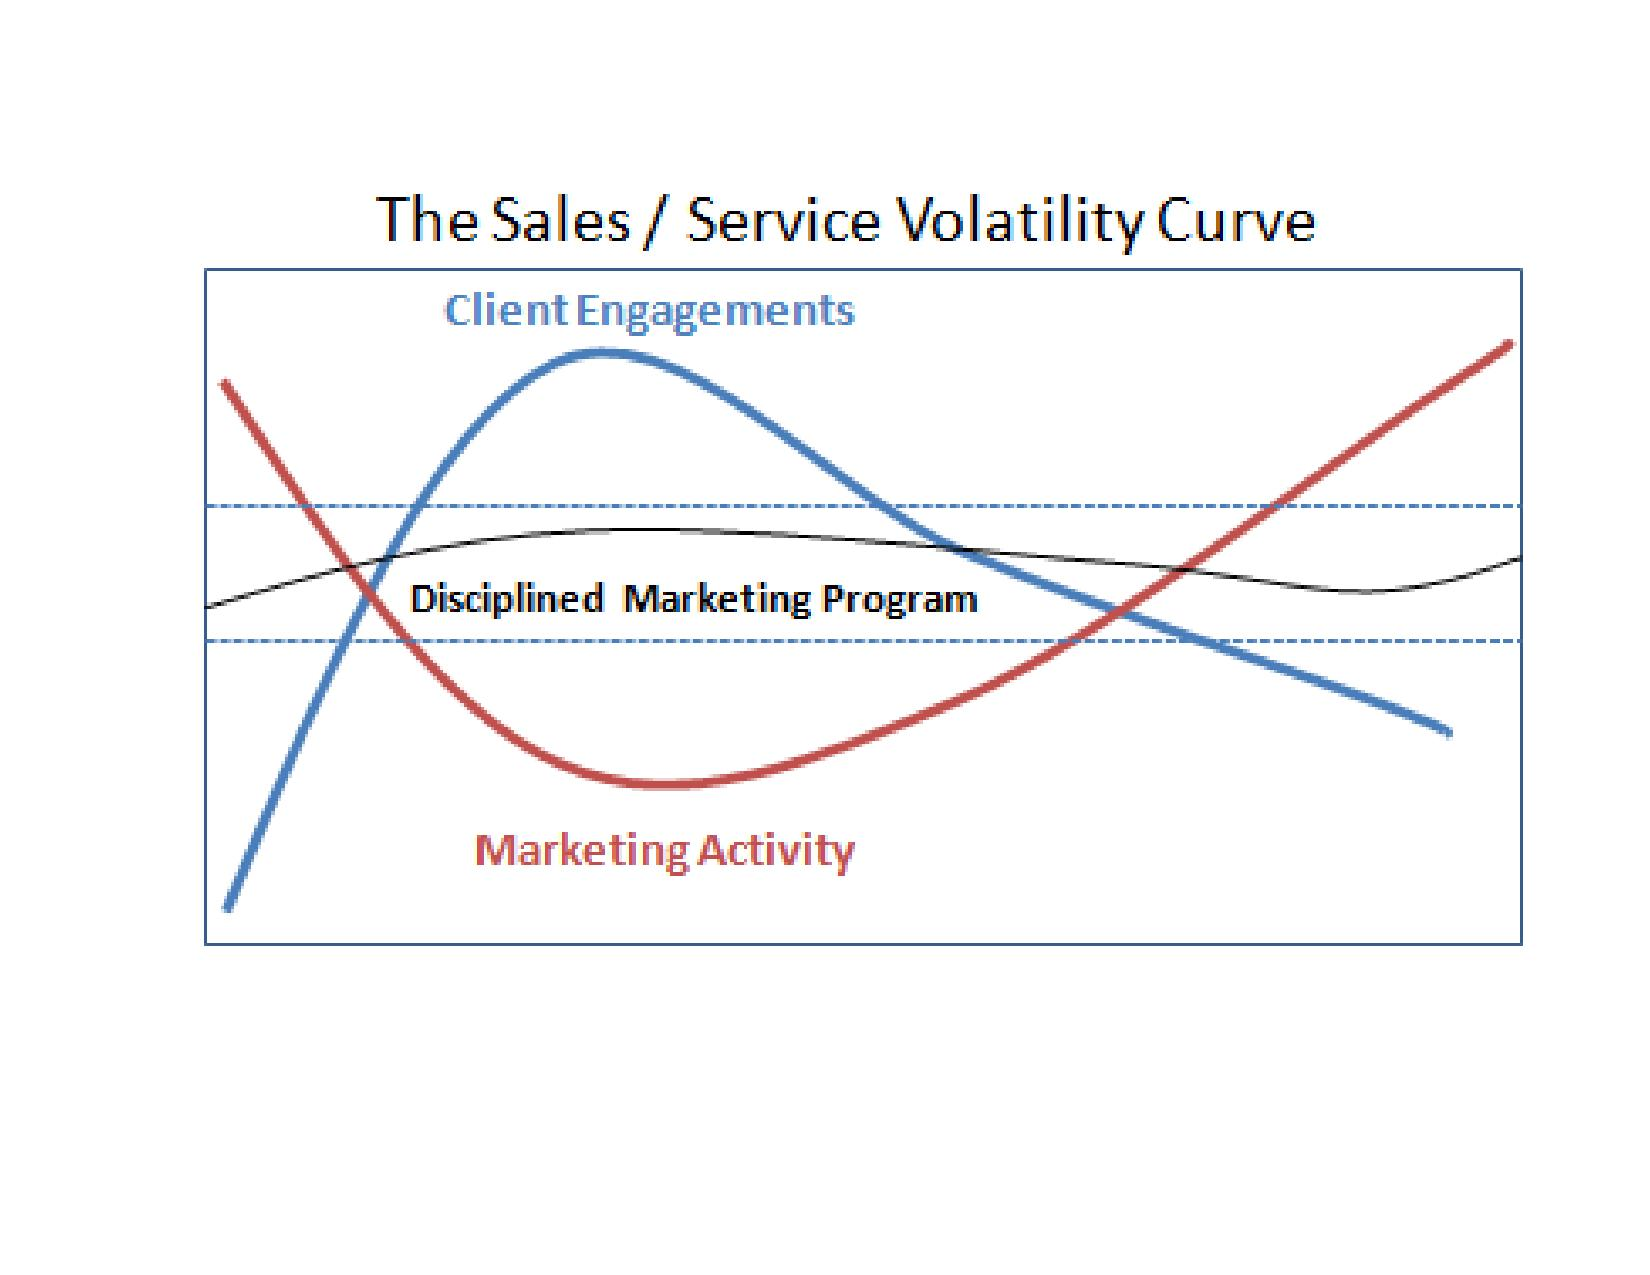 sales curve Patent expiries are inevitable, but brand teams should look to graduate the sales curve.